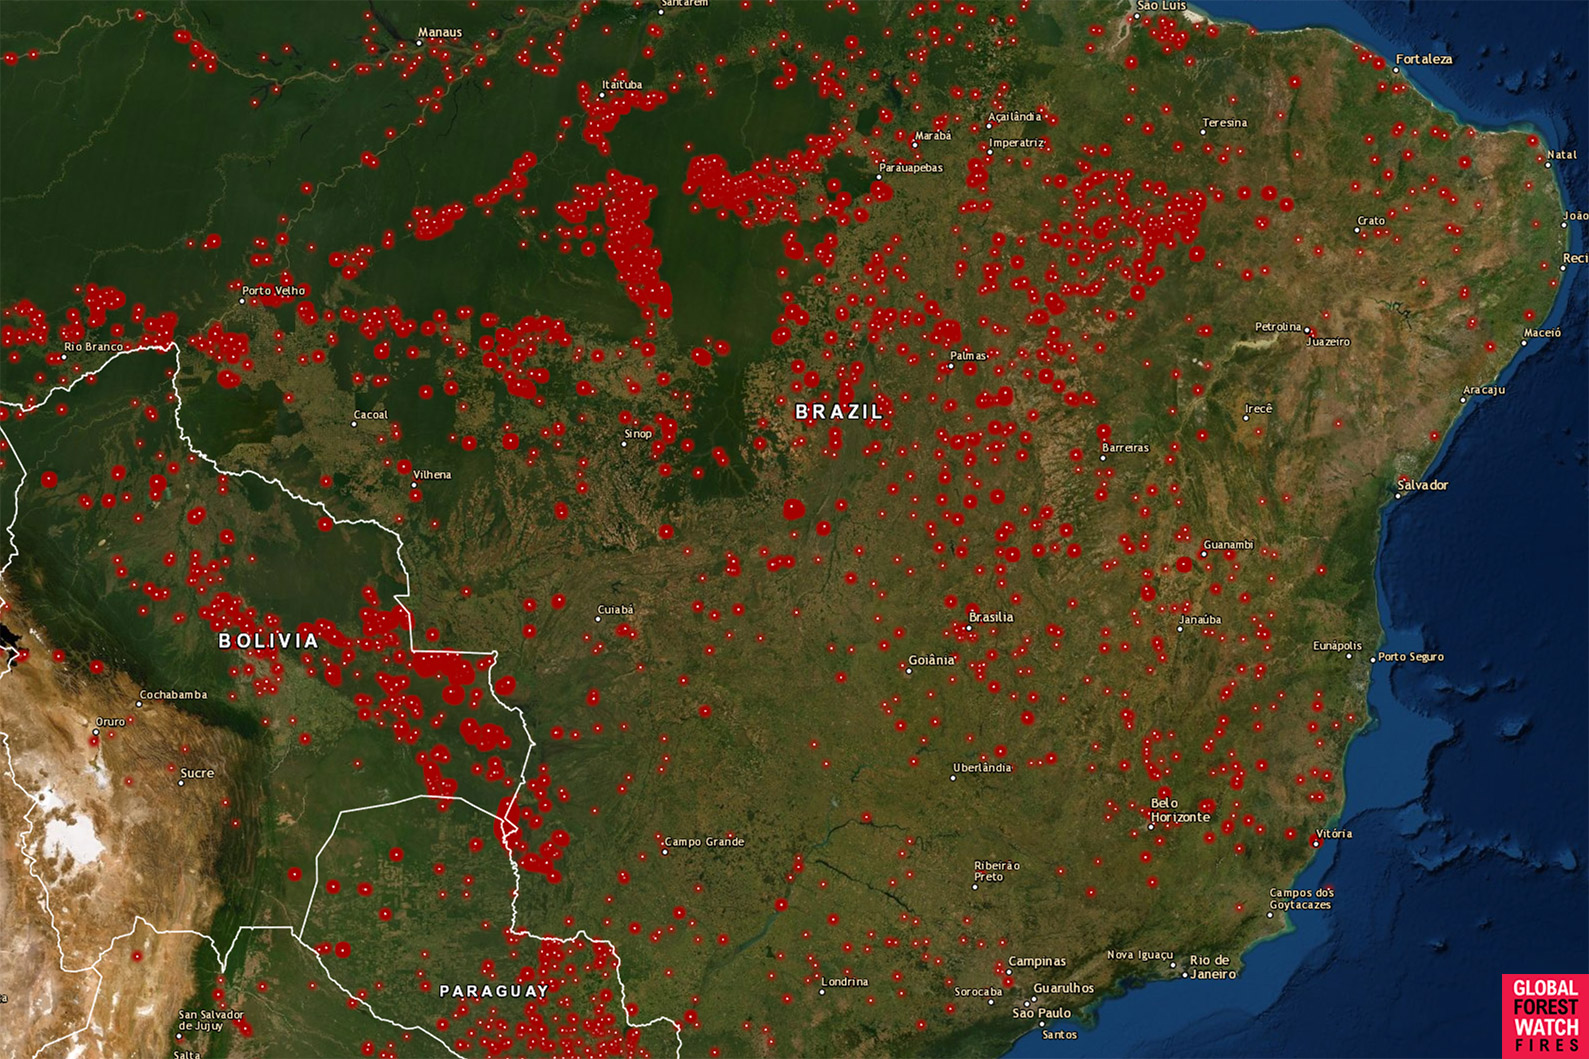 Views of Destruction: Satellite Images Reveal Devastating ... on technology map usa, pollen count map usa, topo map usa, electricity map usa, networking map usa, world map usa, satellites over usa, uv index map usa, ilec map usa, energy map usa, network map usa, street map usa, star map usa, ham radio map usa, fiber map usa, wire map usa, satellite view usa, transportation map usa, radar map usa, road map usa,